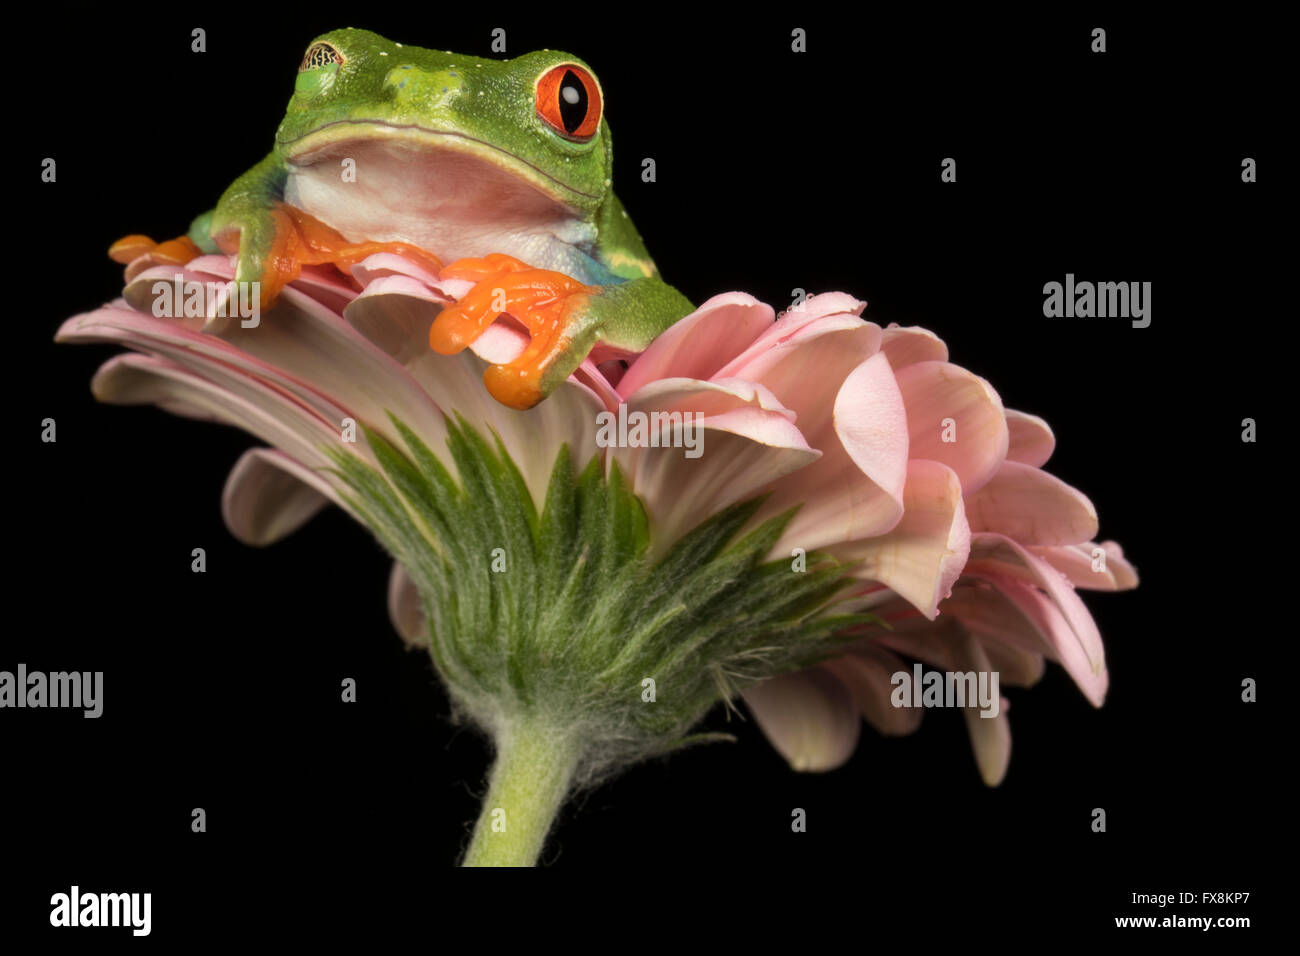 Red Eyed Tree Frog Sitting on a flower with black background - studio image - Stock Image